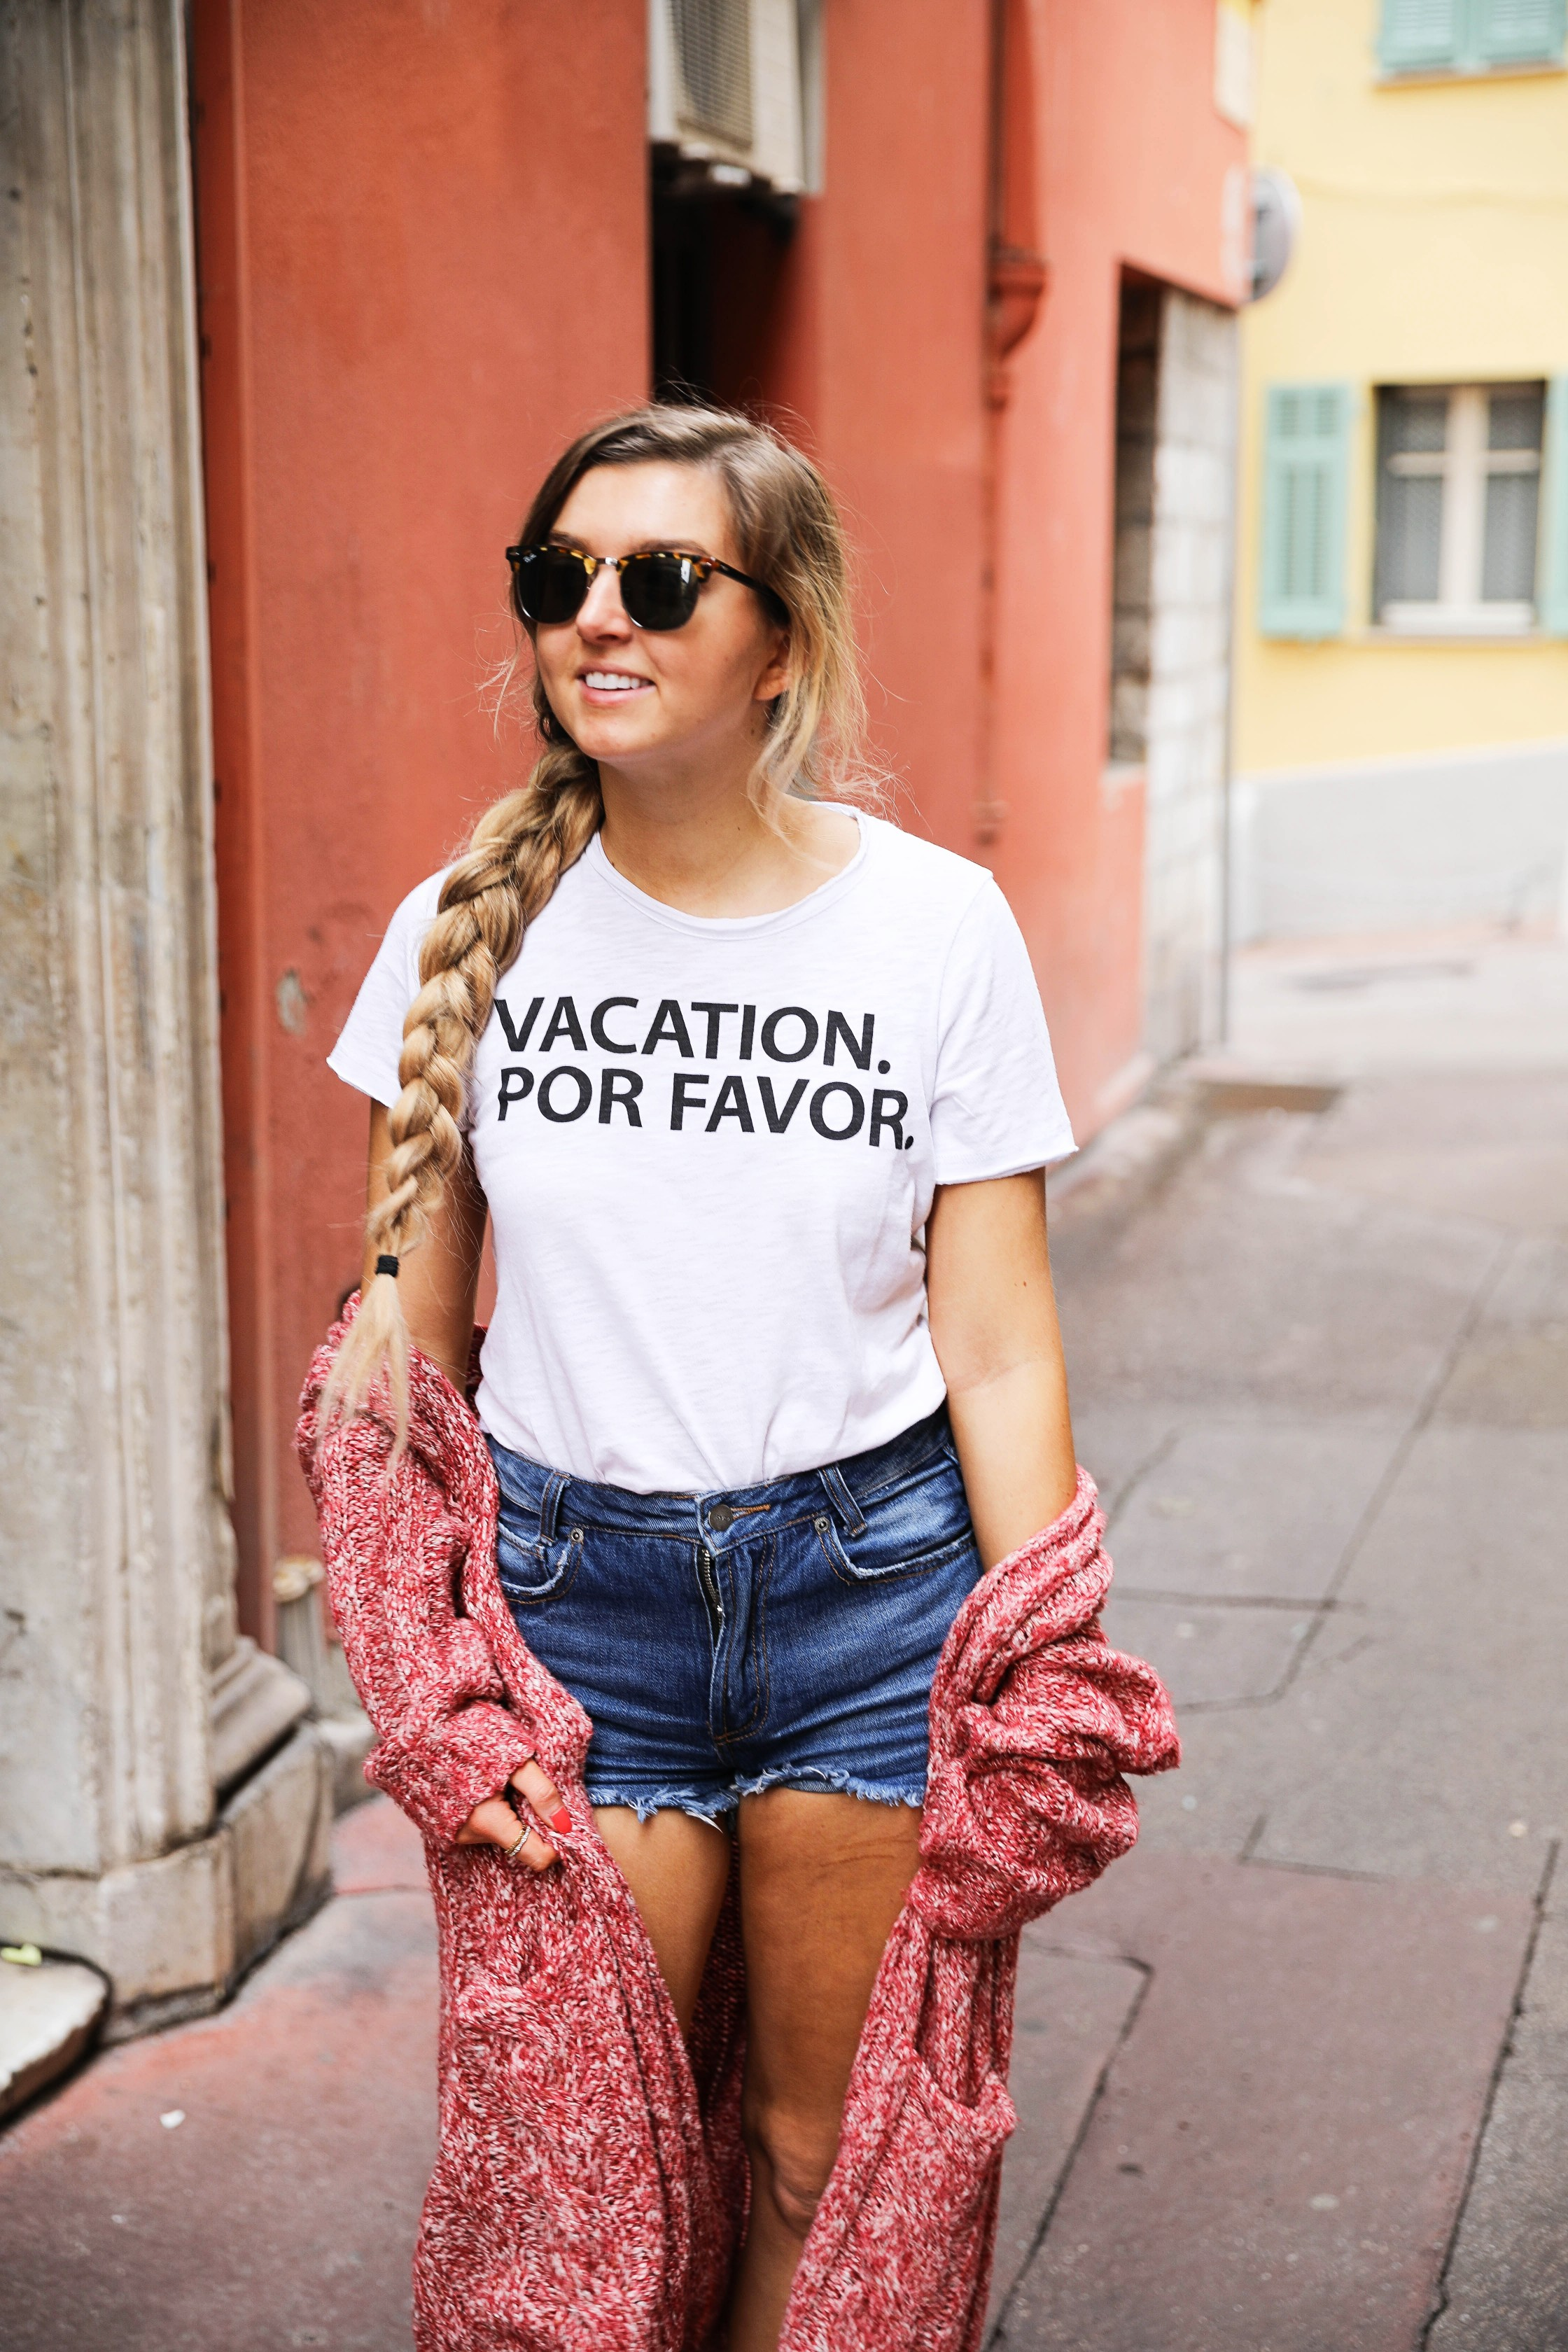 Vacation Por Favor tee outfit in the French Rivera! Nice, France is so beautiful and I loved exploring the bright colored buildings and pretty coast lines. By Lauren Lindmark on dailydoseofcharm.com daily dose of charm